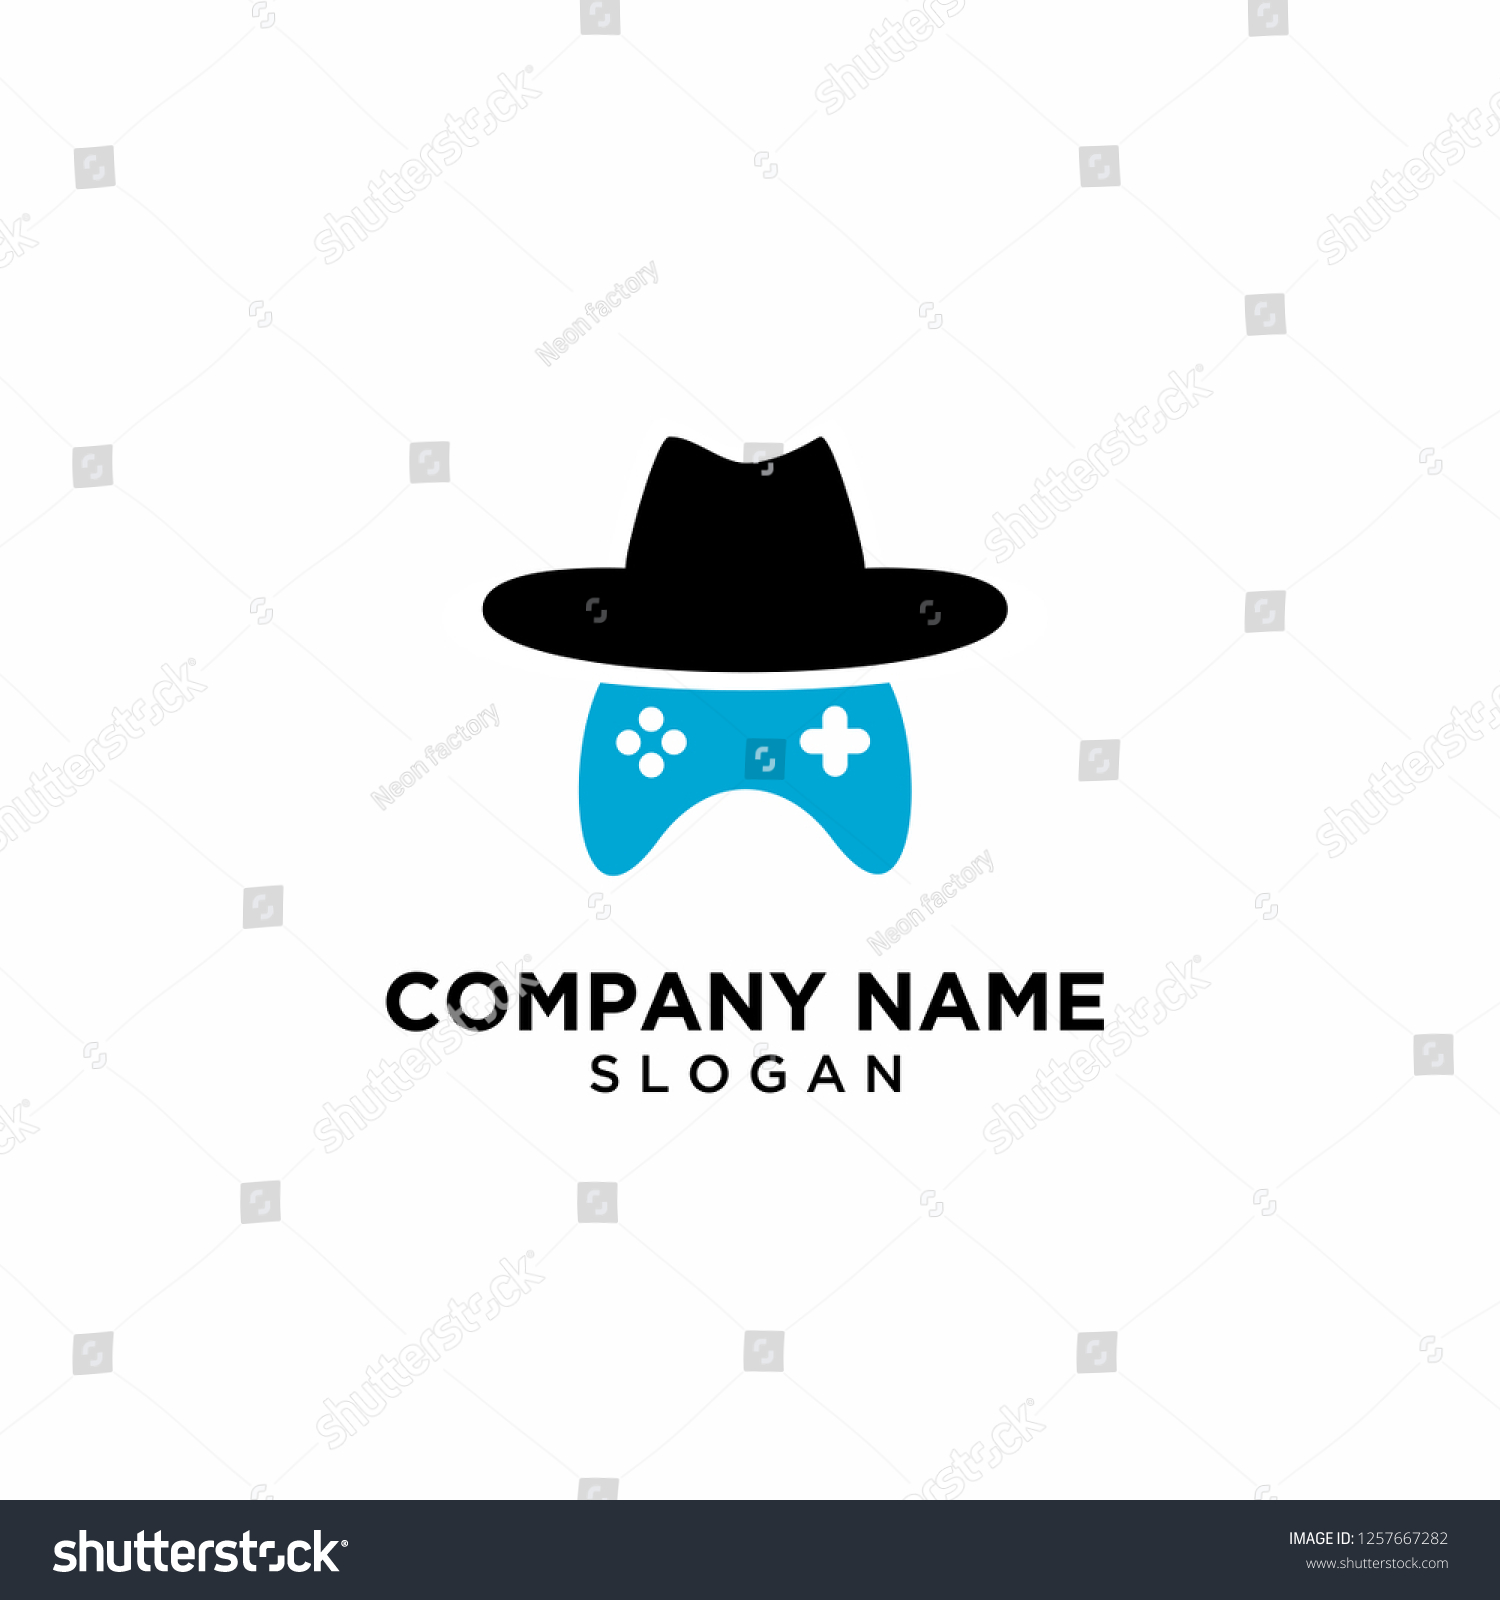 gaming spy detective logo icon designs stock vector royalty free 1257667282 https www shutterstock com image vector gaming spy detective logo icon designs 1257667282